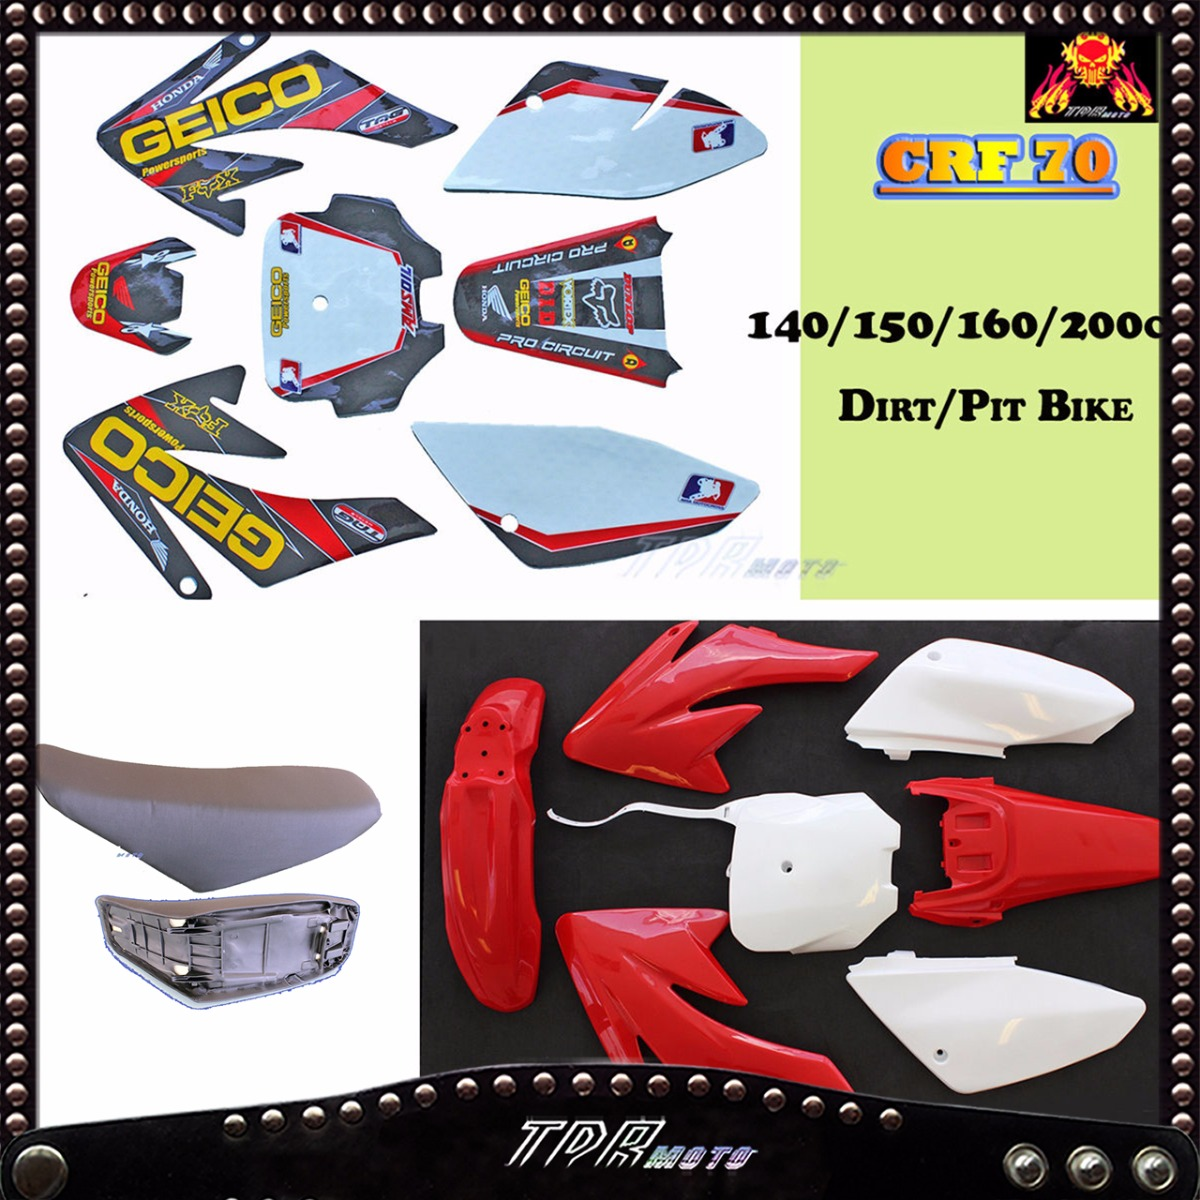 crf70 geico graphics background seat red wht plastic dirt bike pitpro atomik ebay. Black Bedroom Furniture Sets. Home Design Ideas